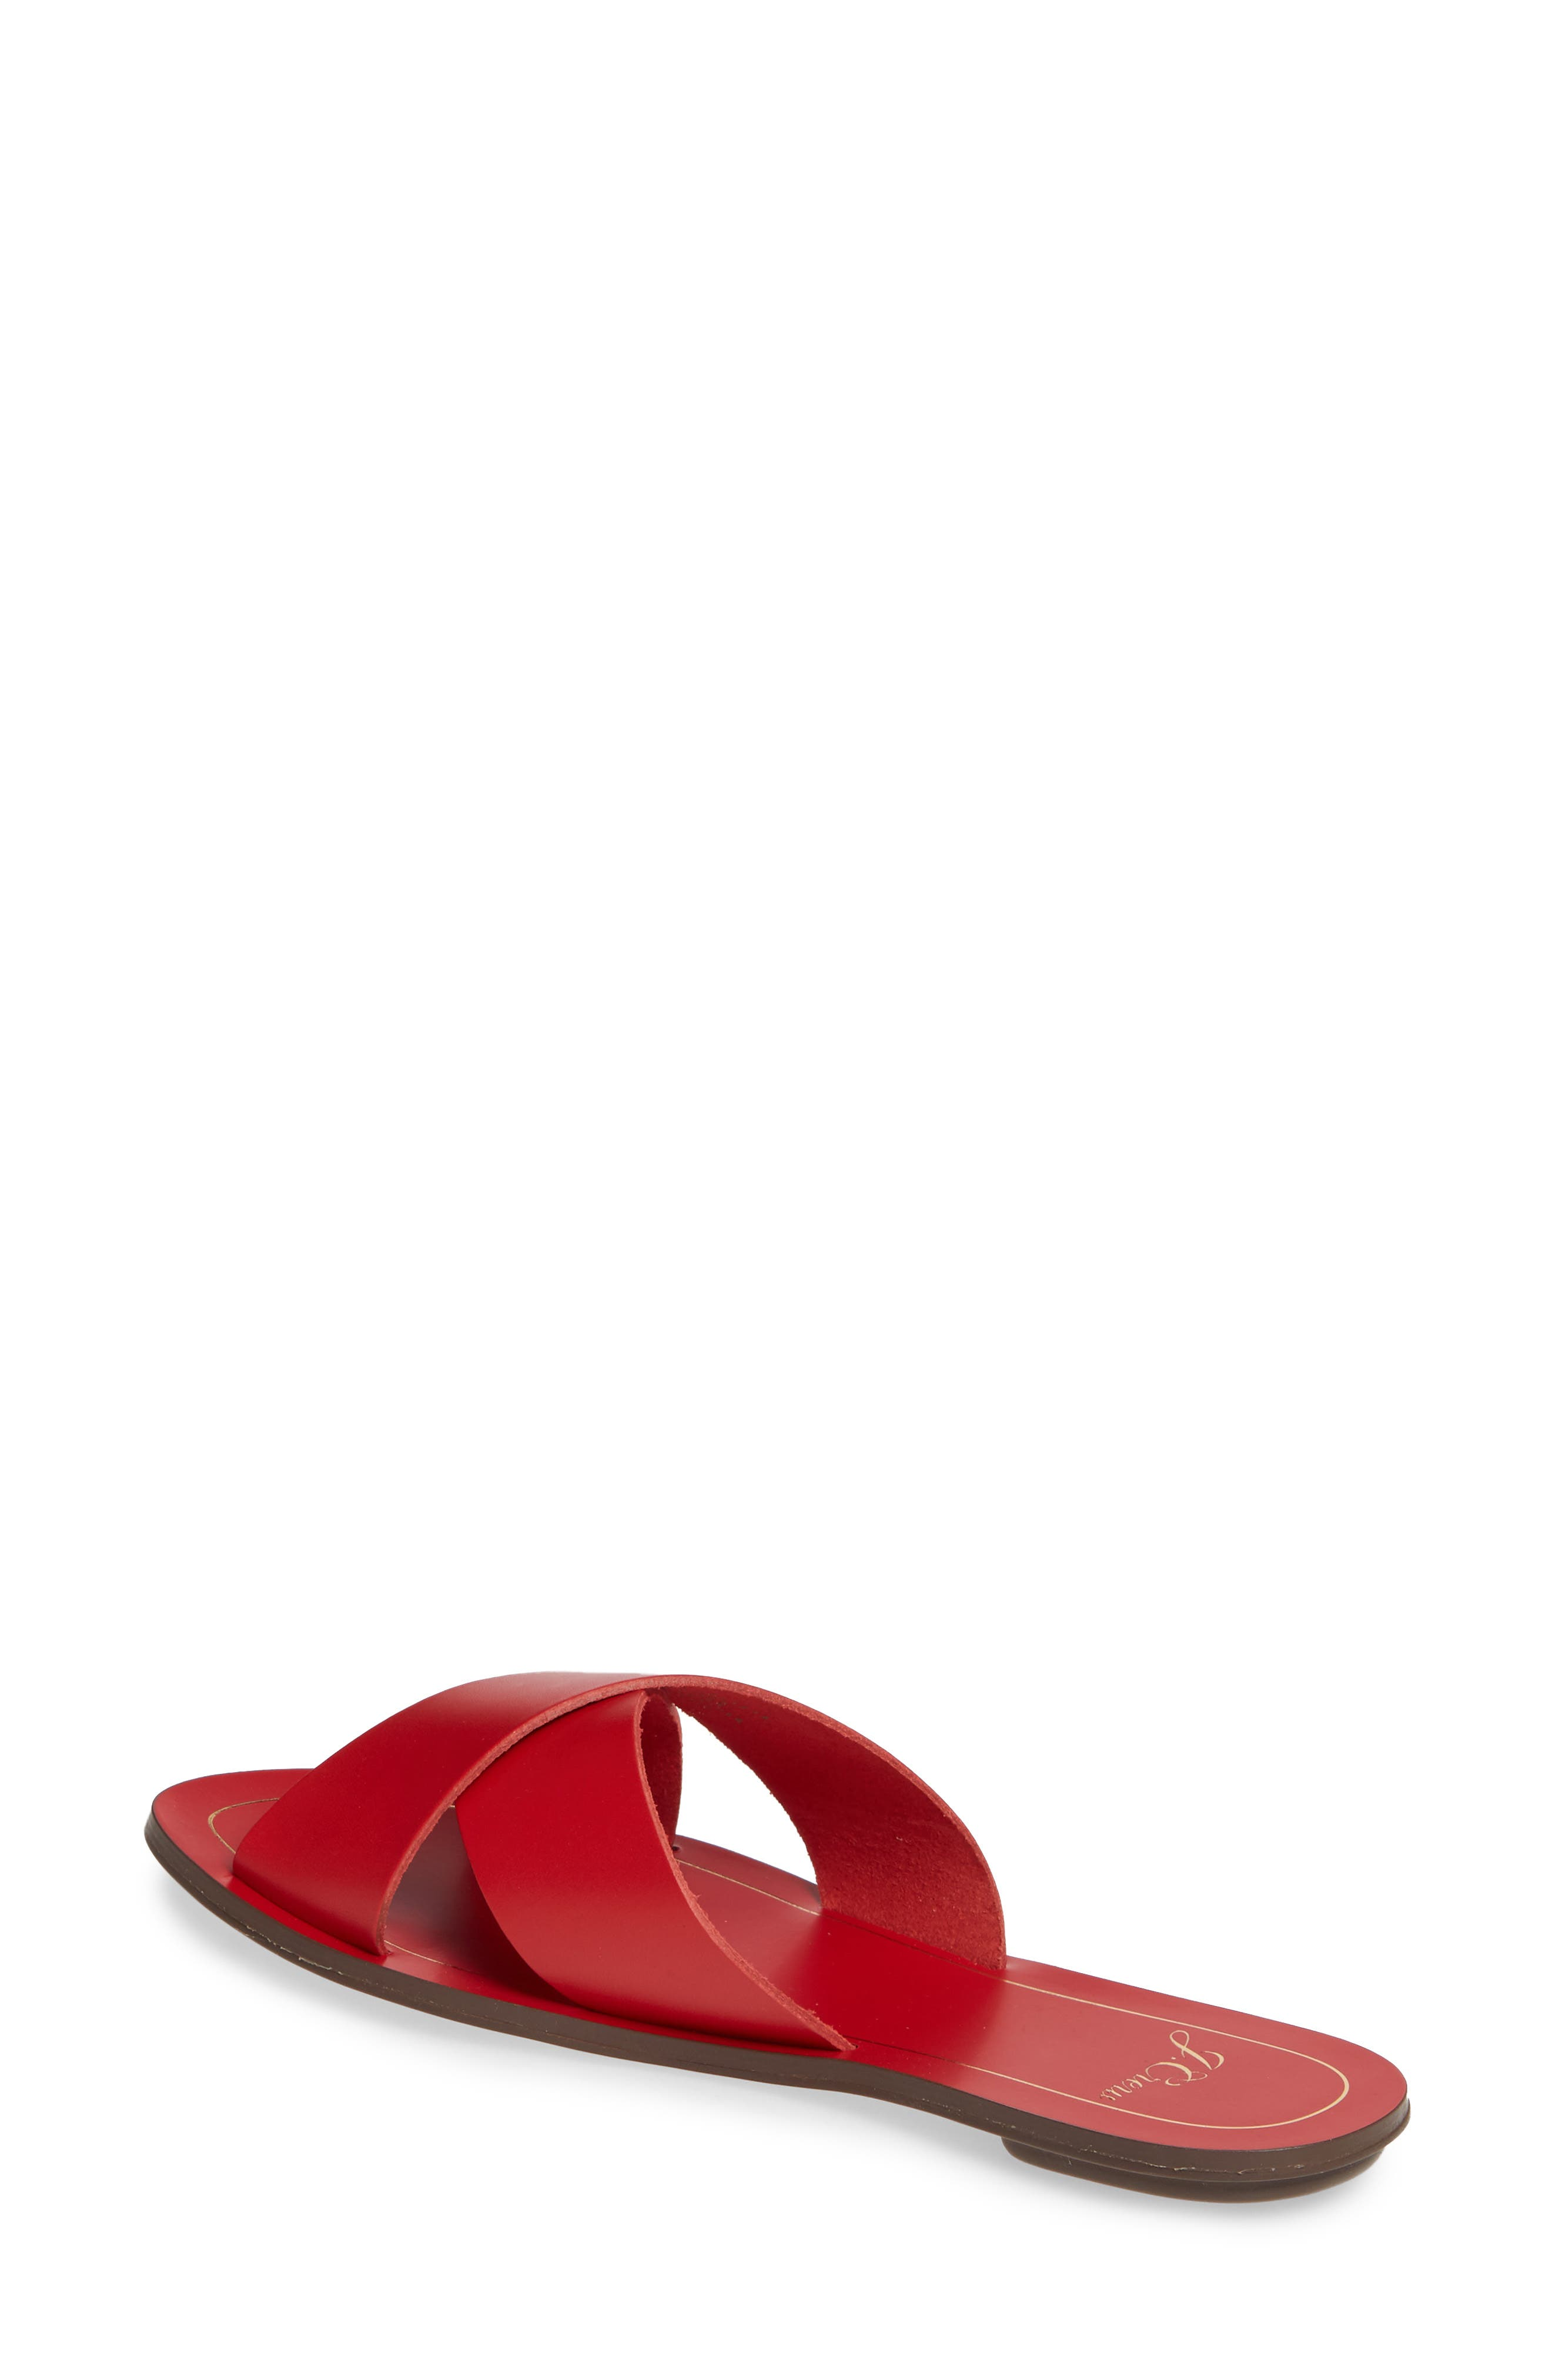 J.CREW, Cyprus Slide Sandal, Alternate thumbnail 2, color, BOLD RED LEATHER